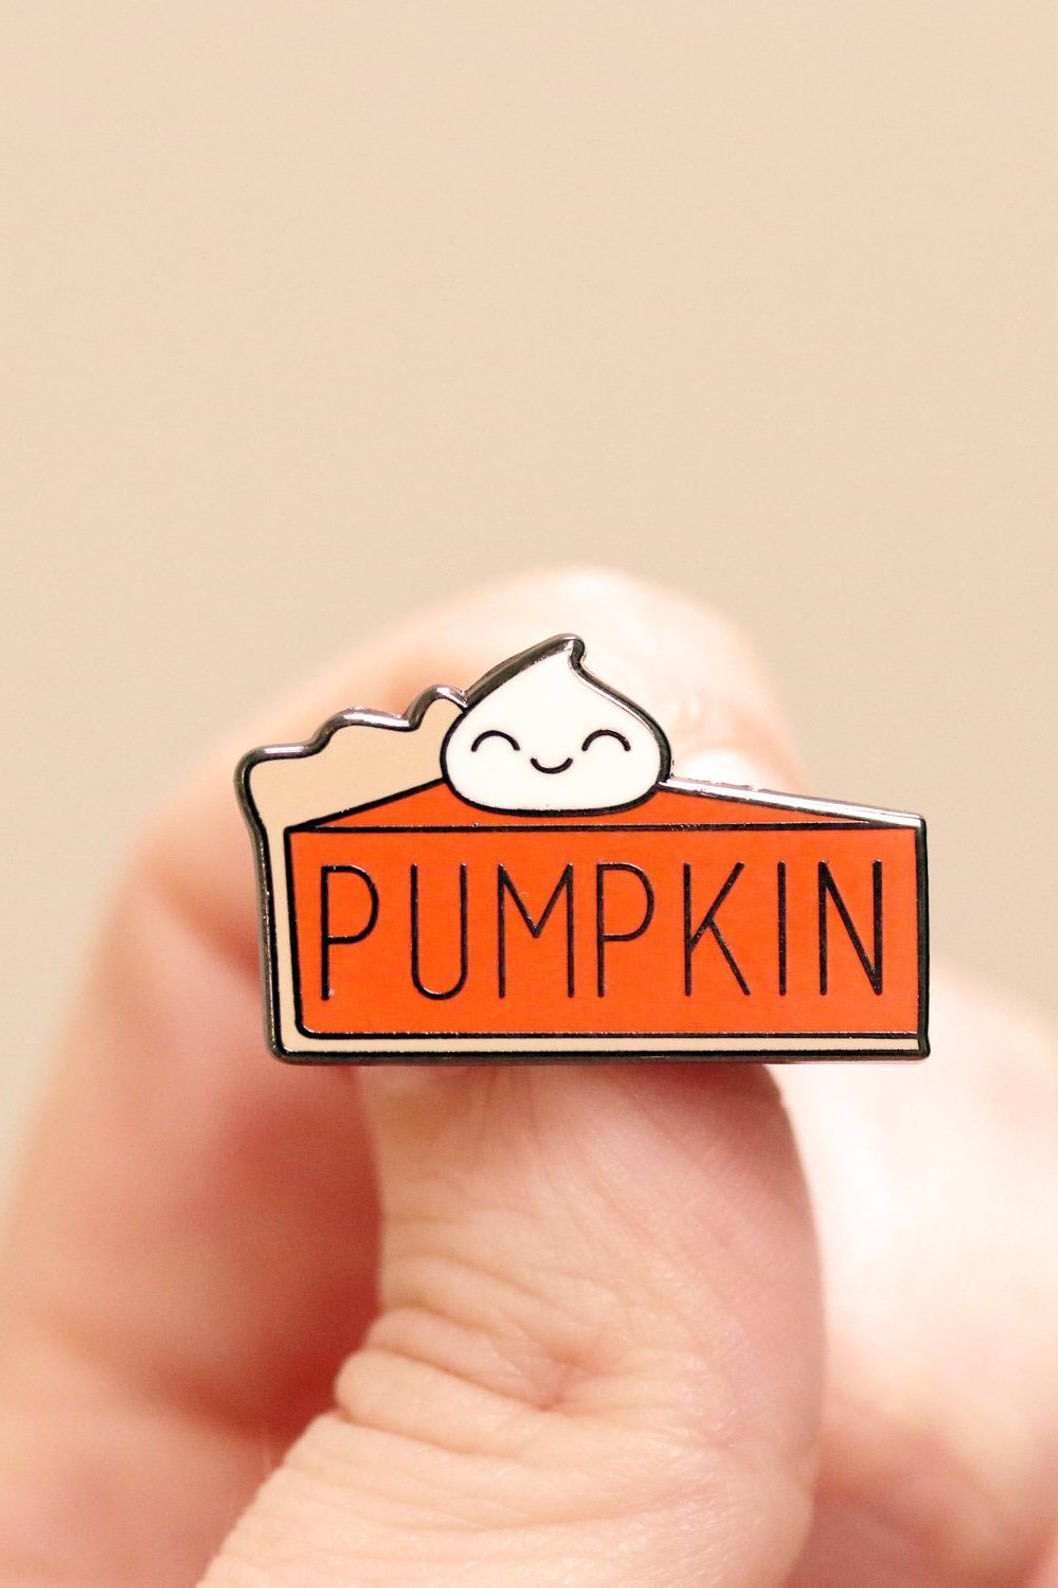 What's Thanksgiving without a little pumpkin pie? This adorable pumpkin pie enamel pie is the perfect addition to your fall pin collection. Add to your fall jacket or bag for a fun seasonal accessory.